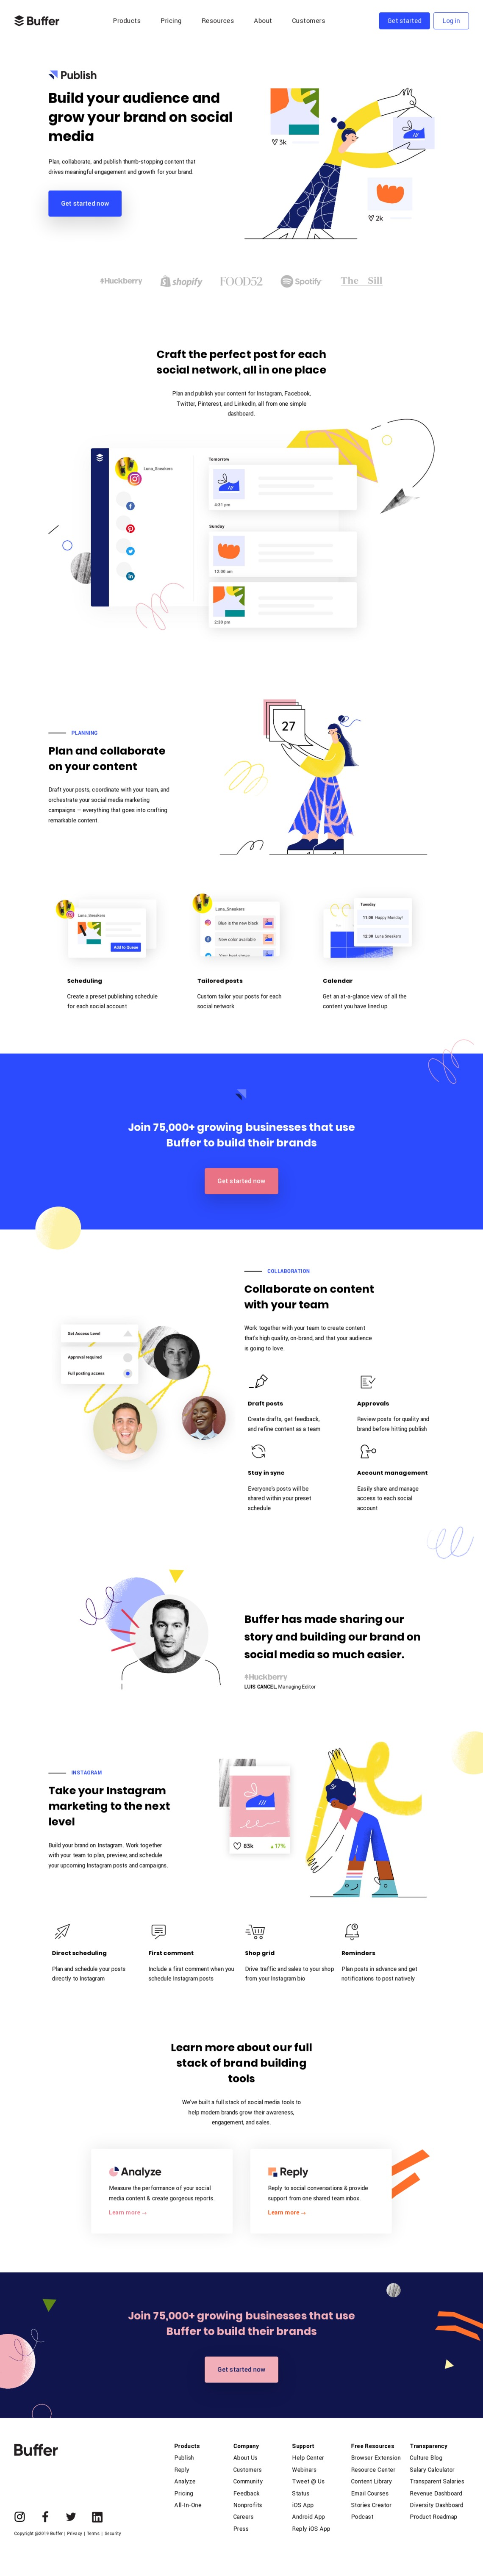 Buffer | Social Media Management Software for Growing Brands